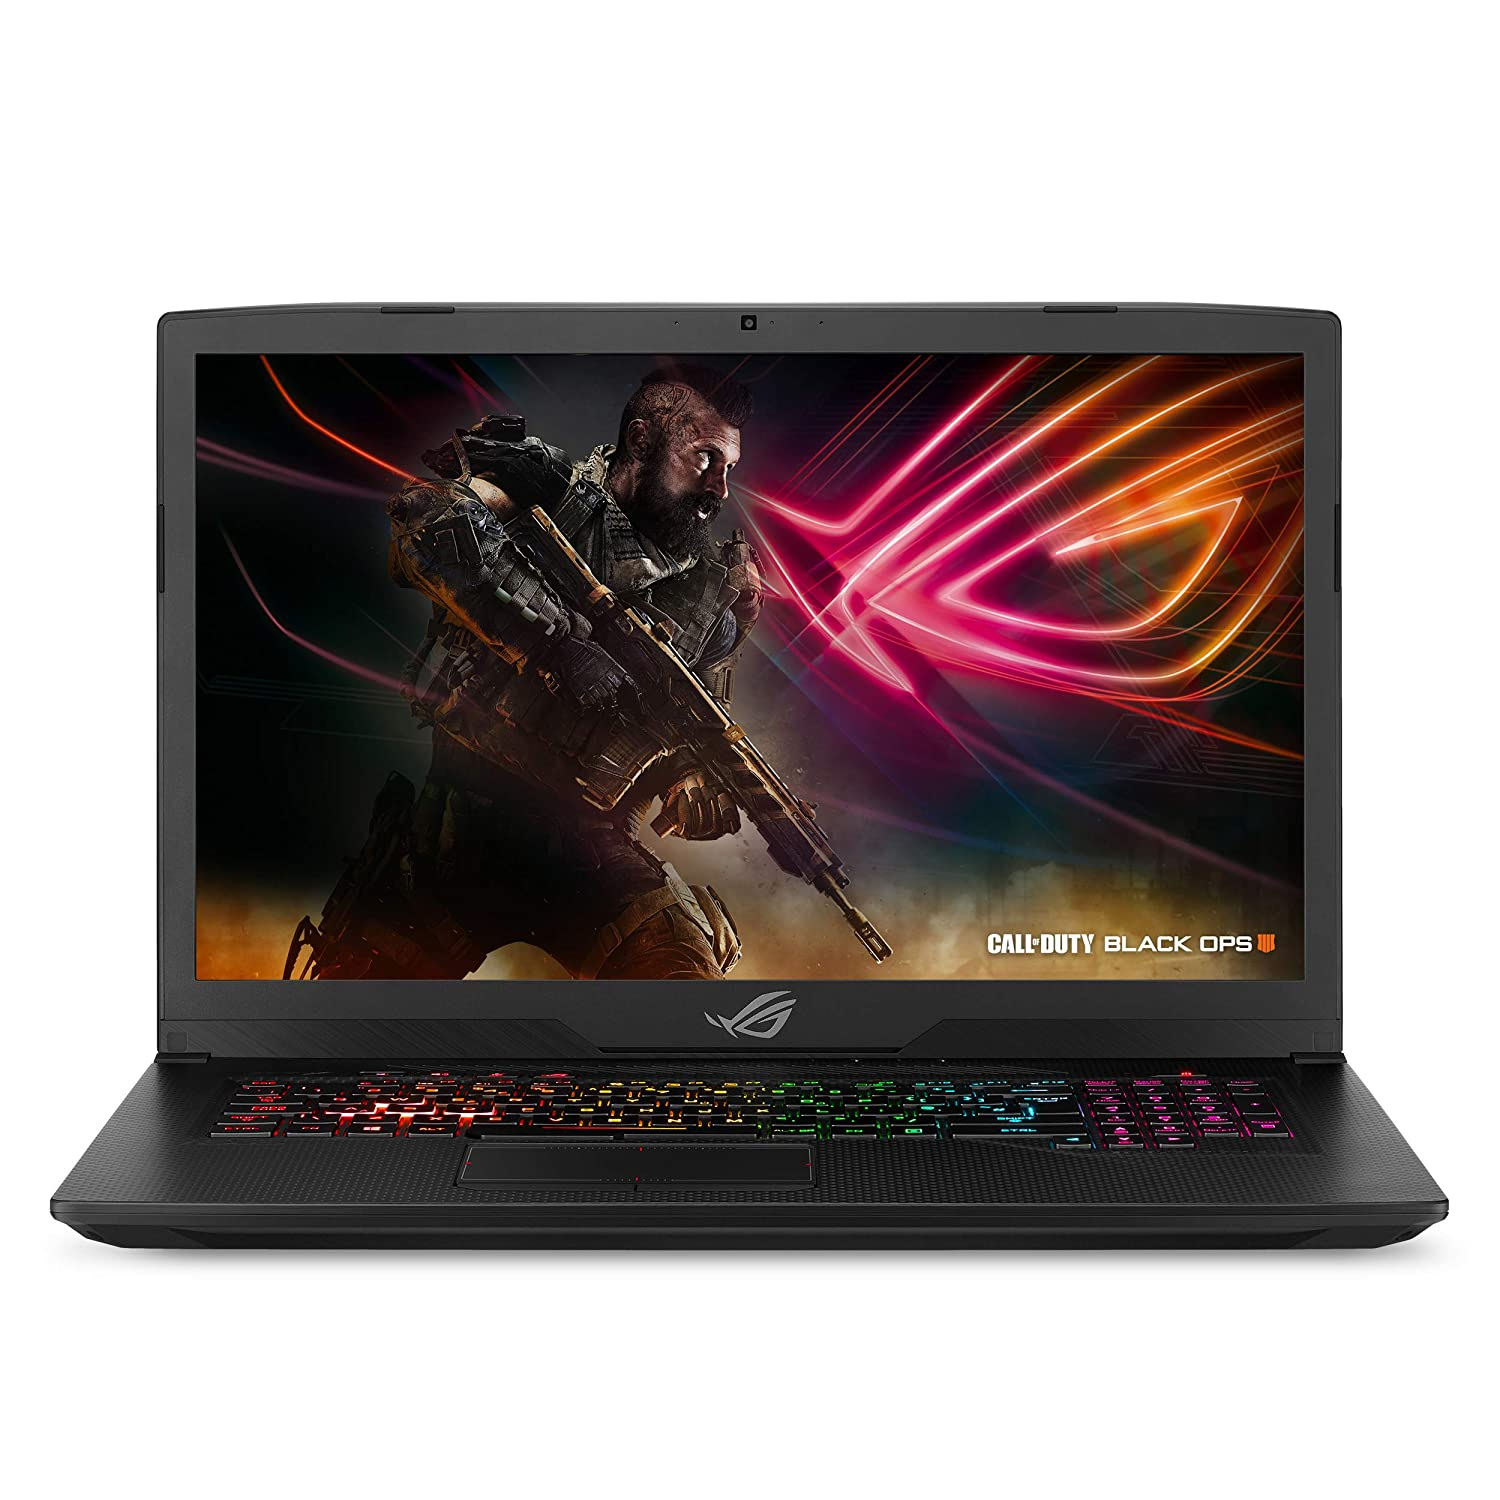 "ASUS ROG Strix Scar Edition Gaming Laptop, 17.3"" 144Hz 3ms Full HD, Intel Core i7-8750H, GeForce GTX 1070 8GB, 16GB DDR4, 256GB PCIe SSD + 1TB FireCuda, Windows 10 - GL703GS-DS74"